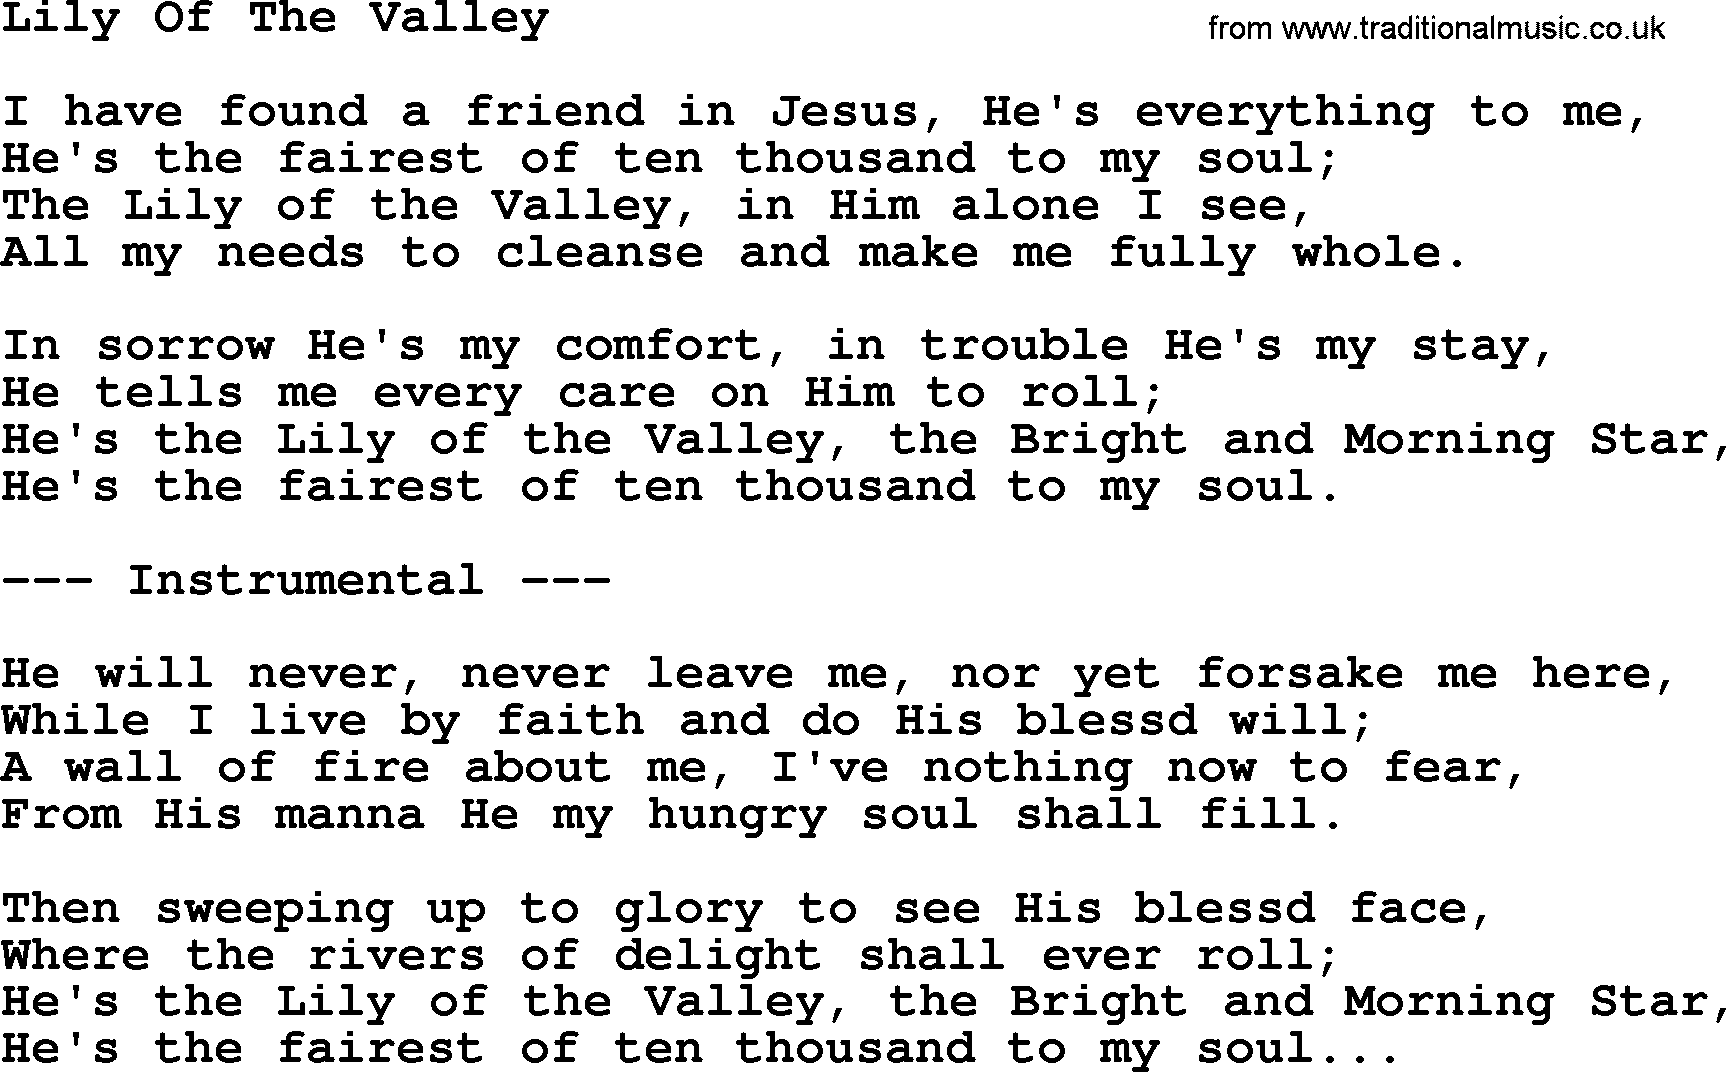 Lily Of The Valley by George Jones - Counrty song lyrics Pictures Of Lily Lyrics